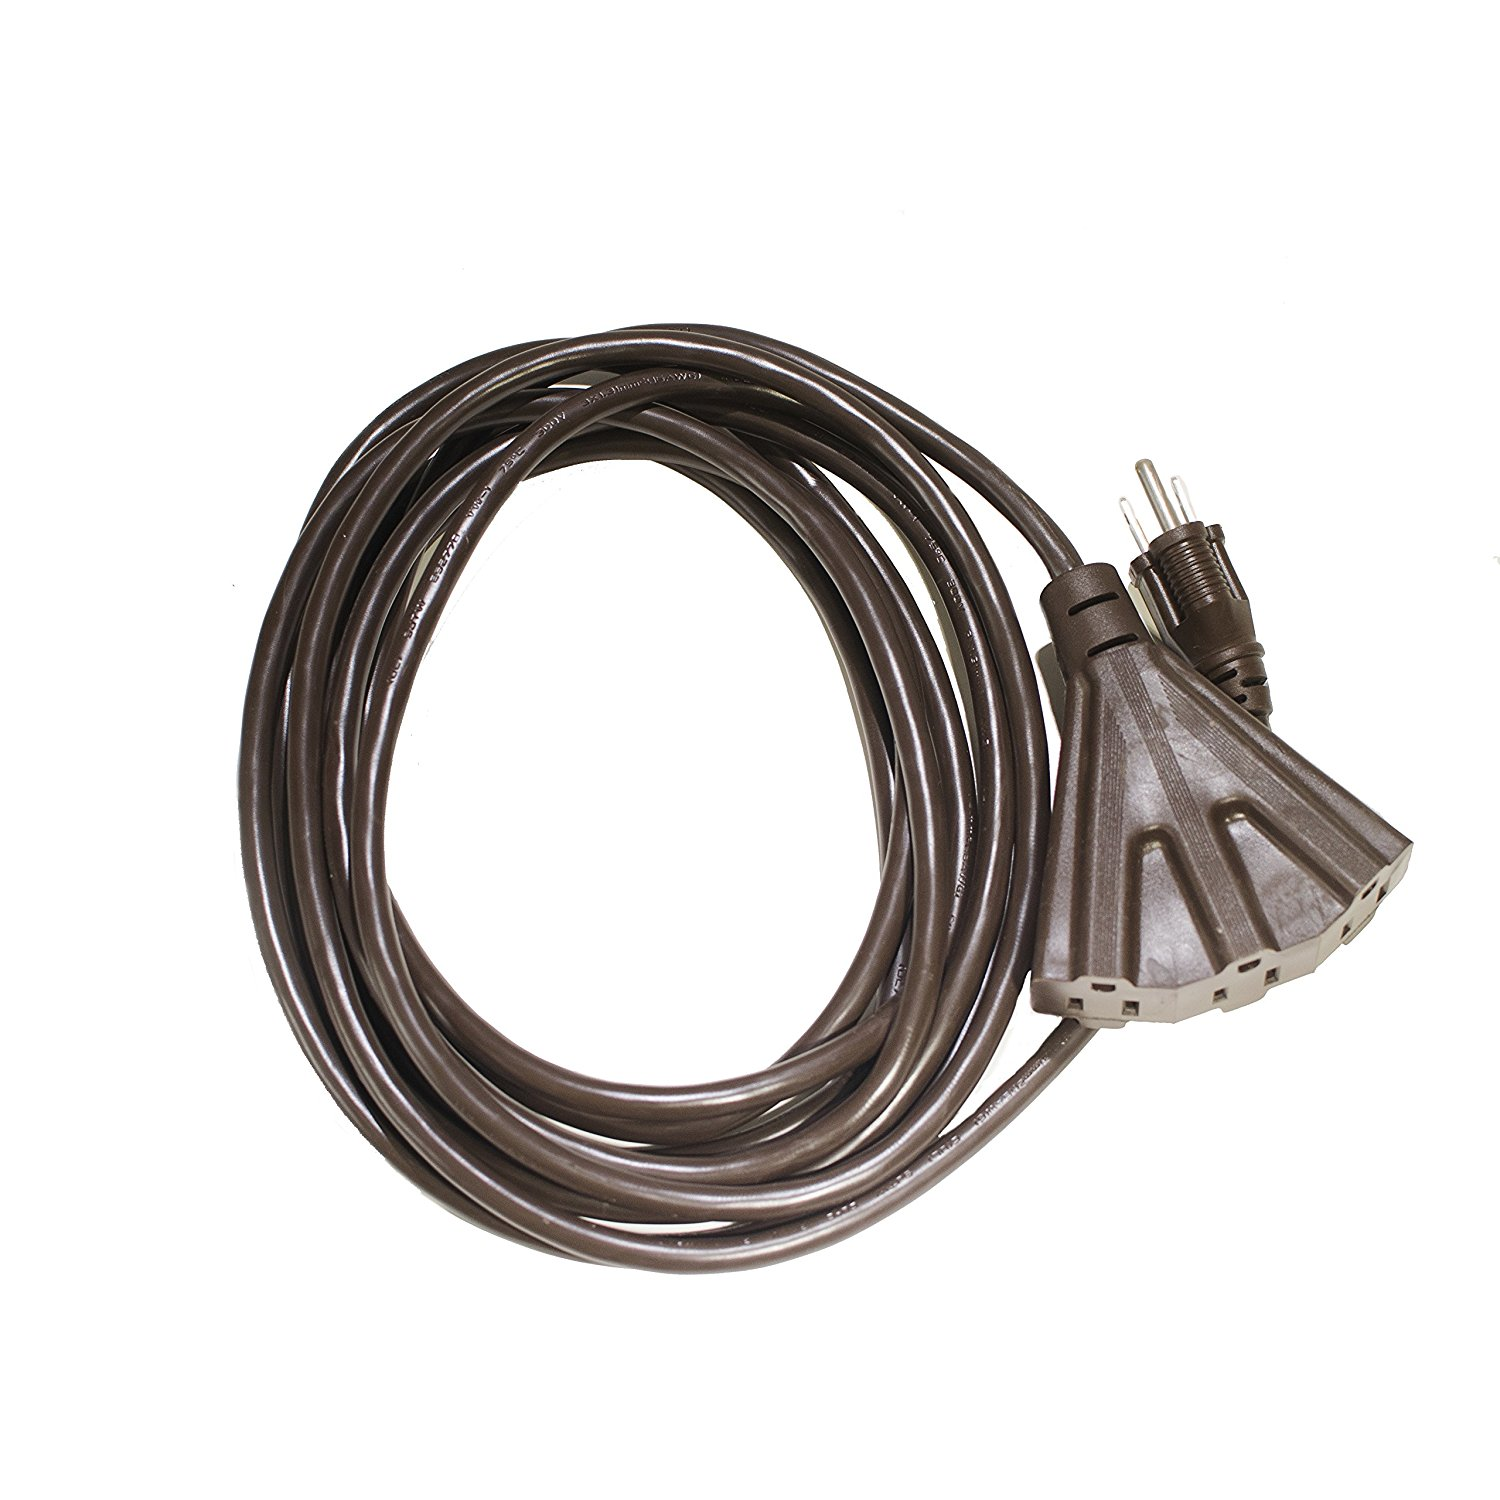 Holiday Lighting Outlet 15 ft. 16/3 SJTW Indoor Outdoor Extension Cord, Brown, 3 Outlets, 3 Prong - UL Listed